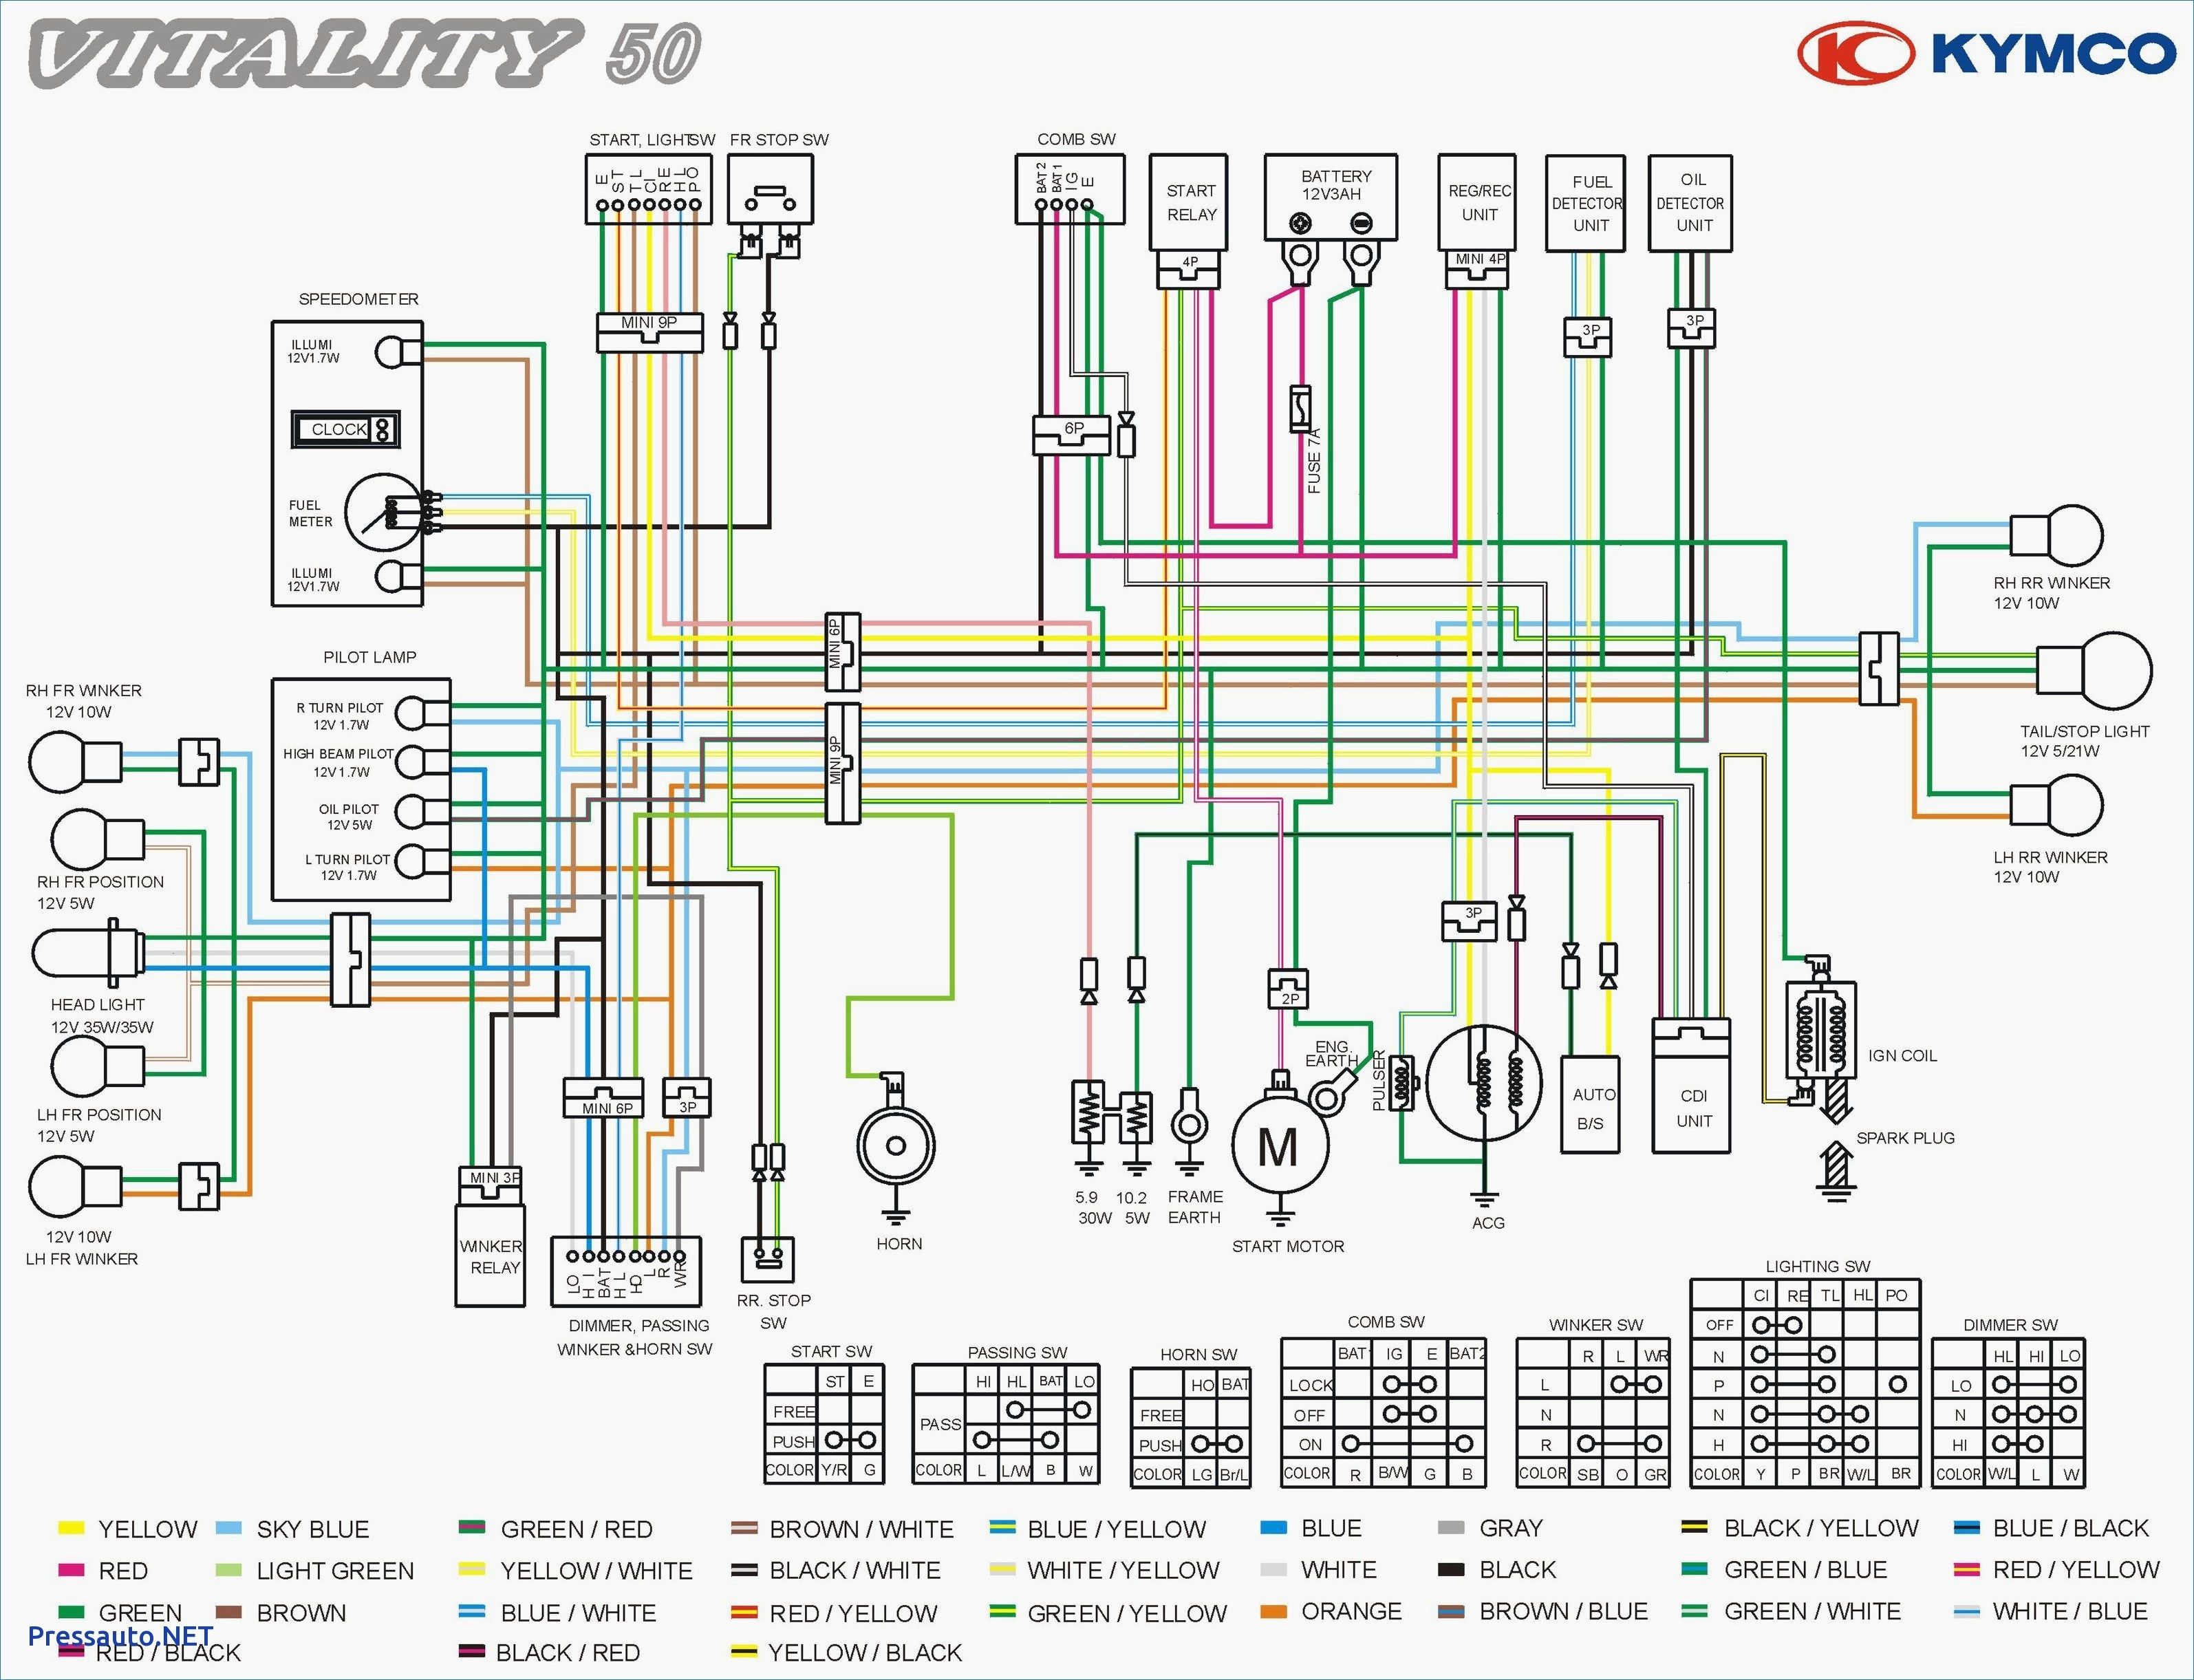 Wiring Diagram For Kymco Agility 50 Download Free And